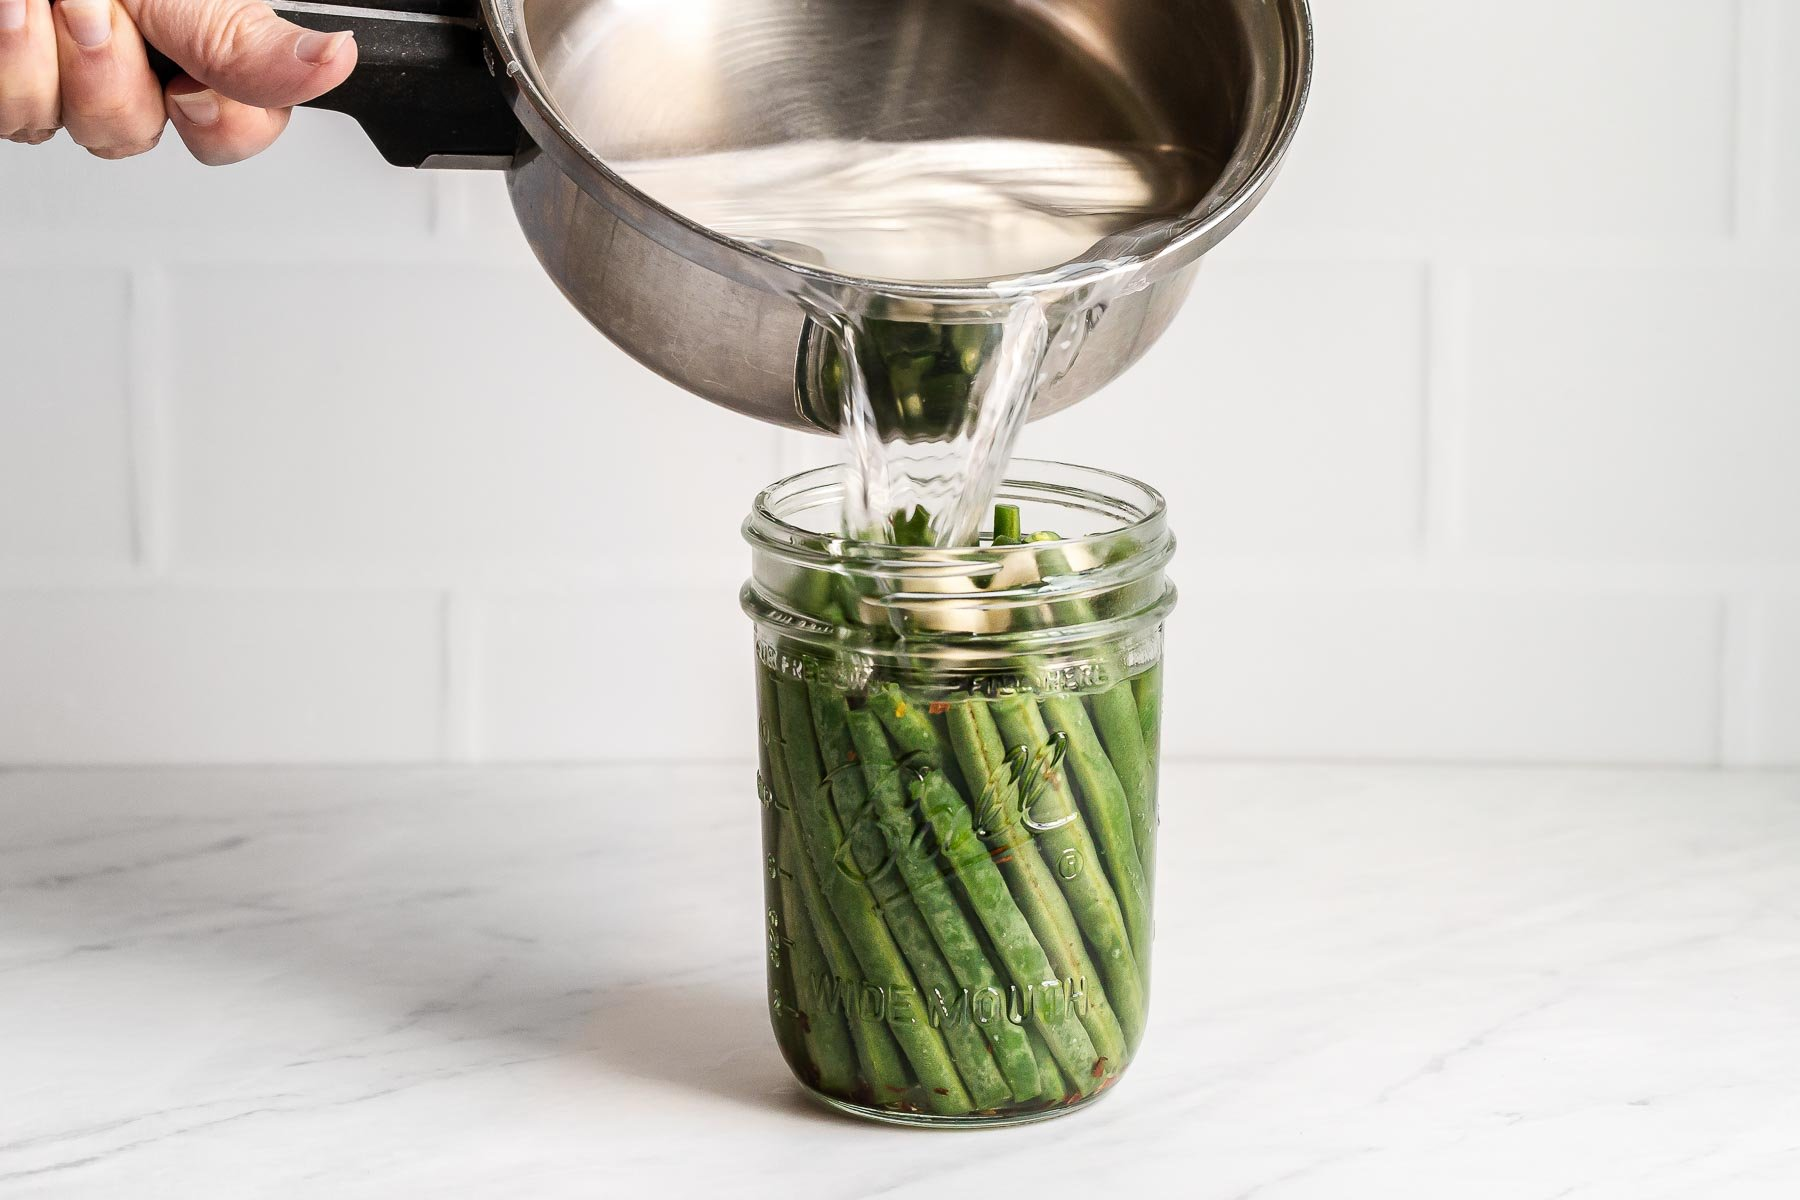 Pouring vinegar over green beans in a jar.